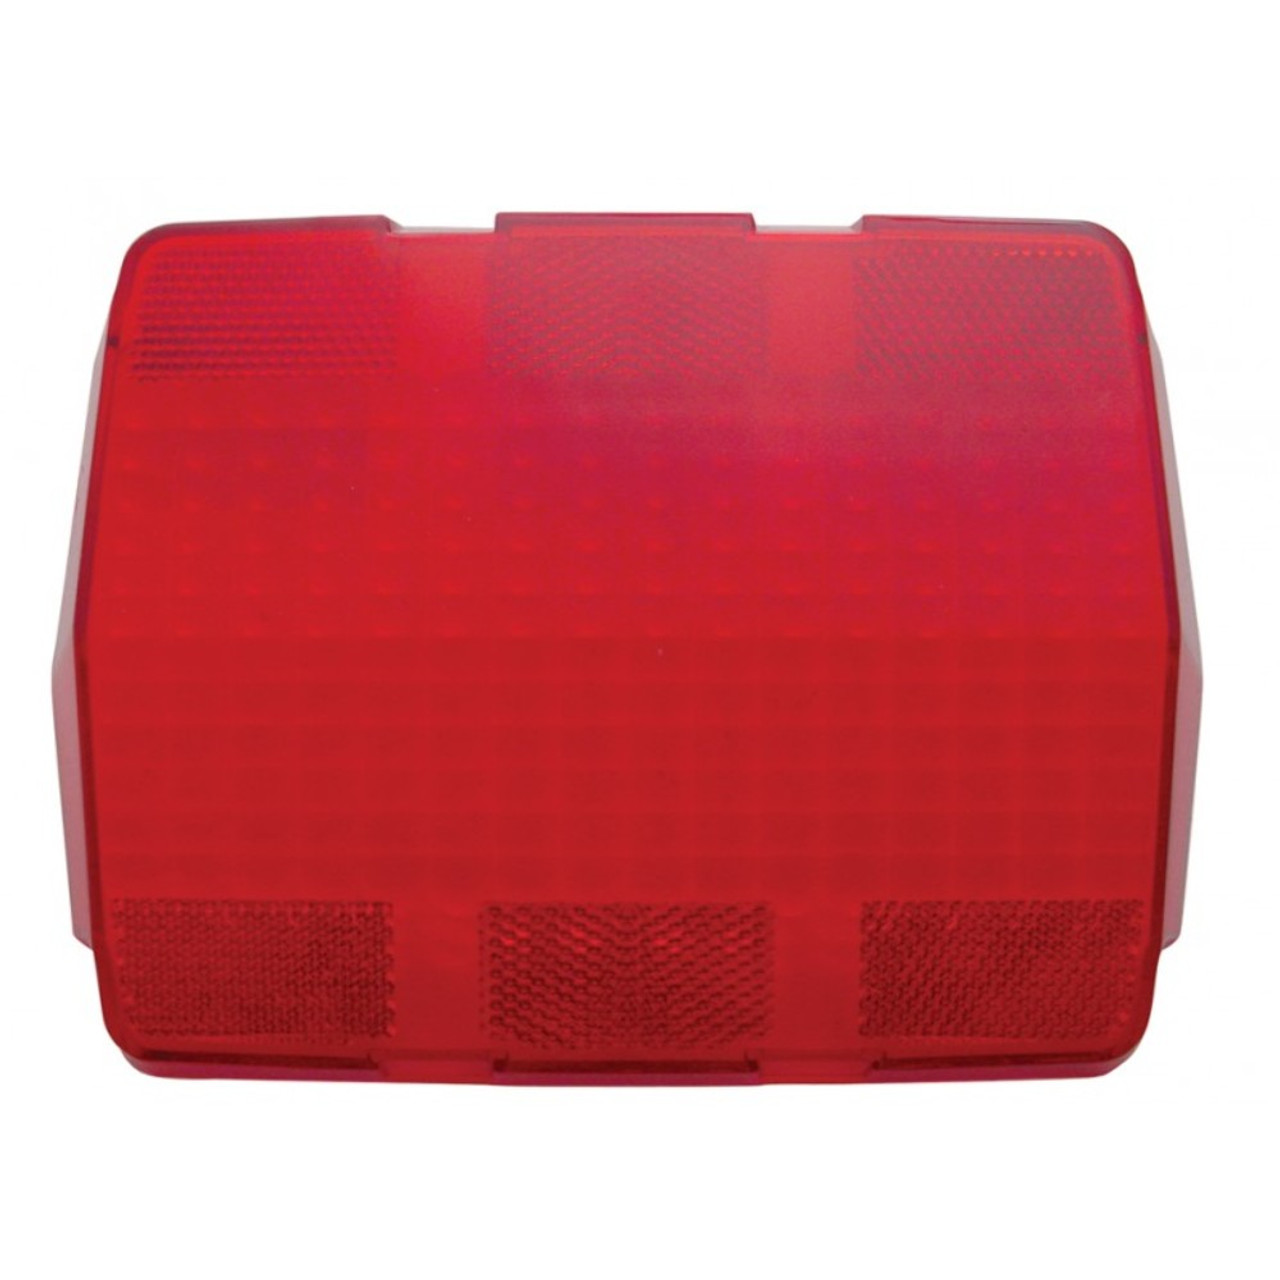 Tail Light Lens, Compatible with Ford Mustang 1964-1/2 1965 1966